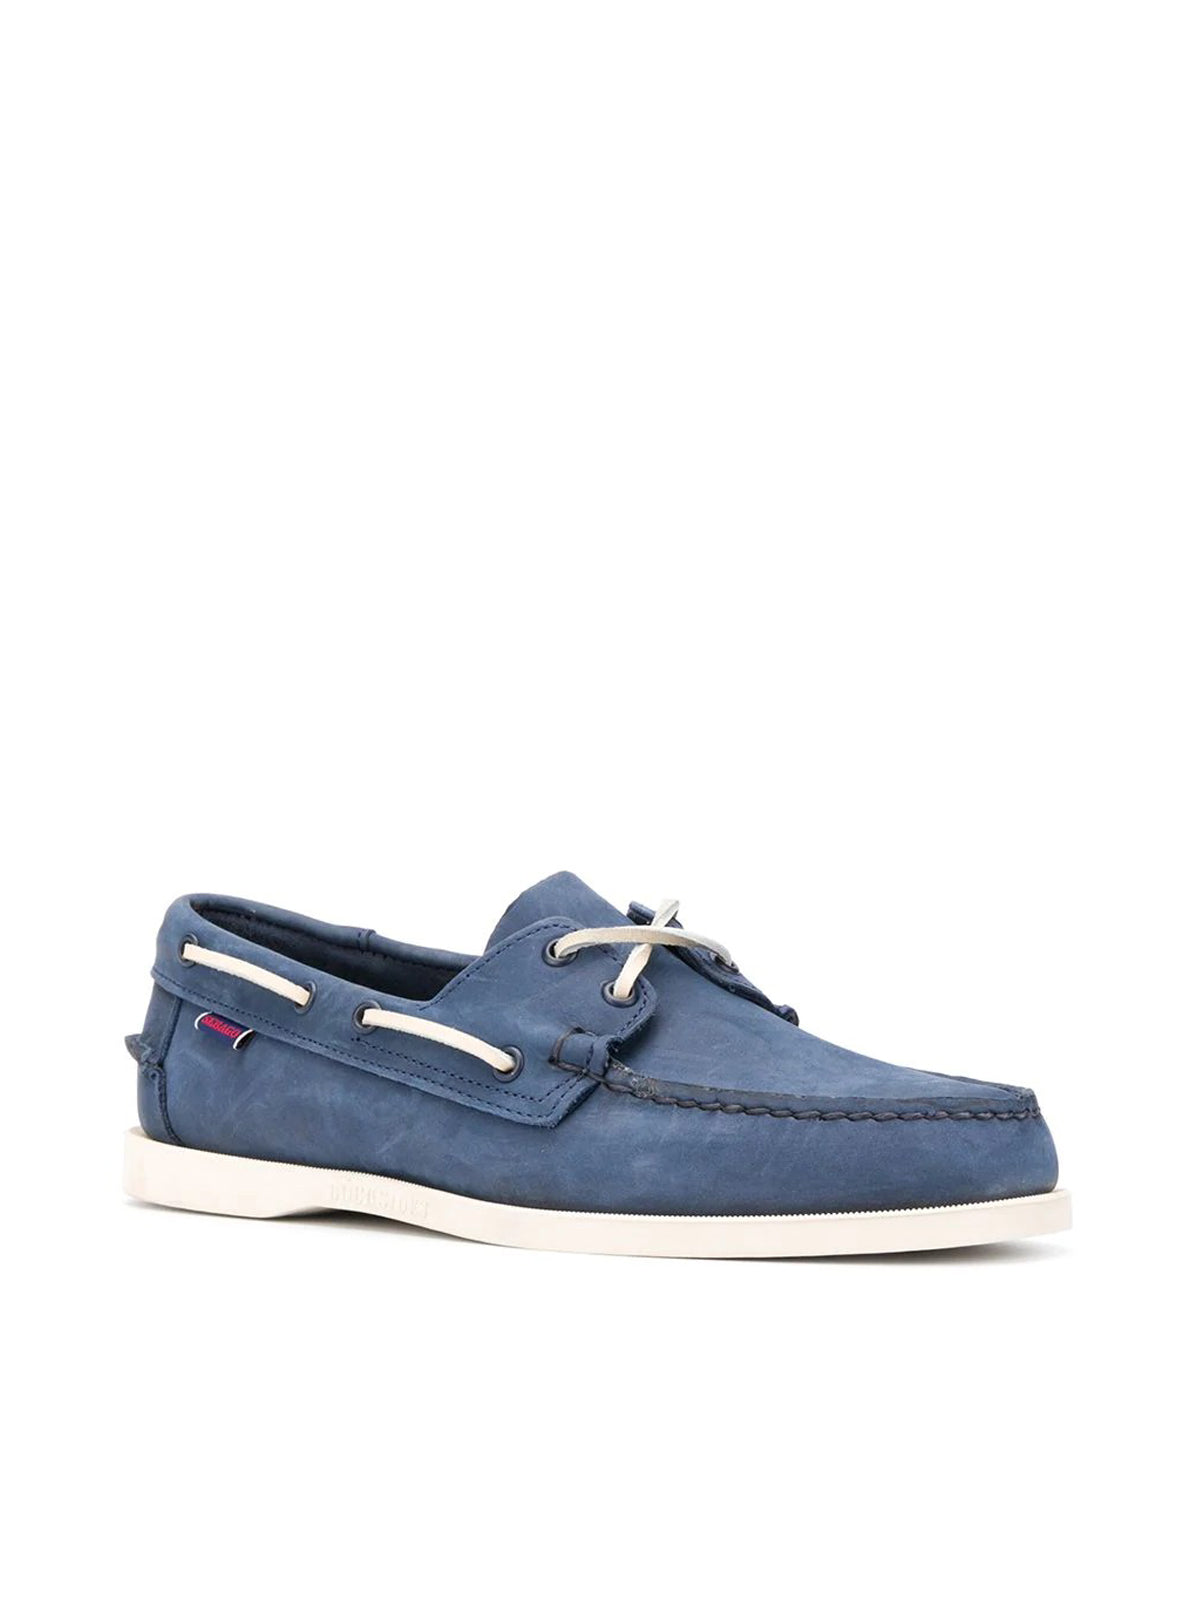 Dockside Portland boat shoes